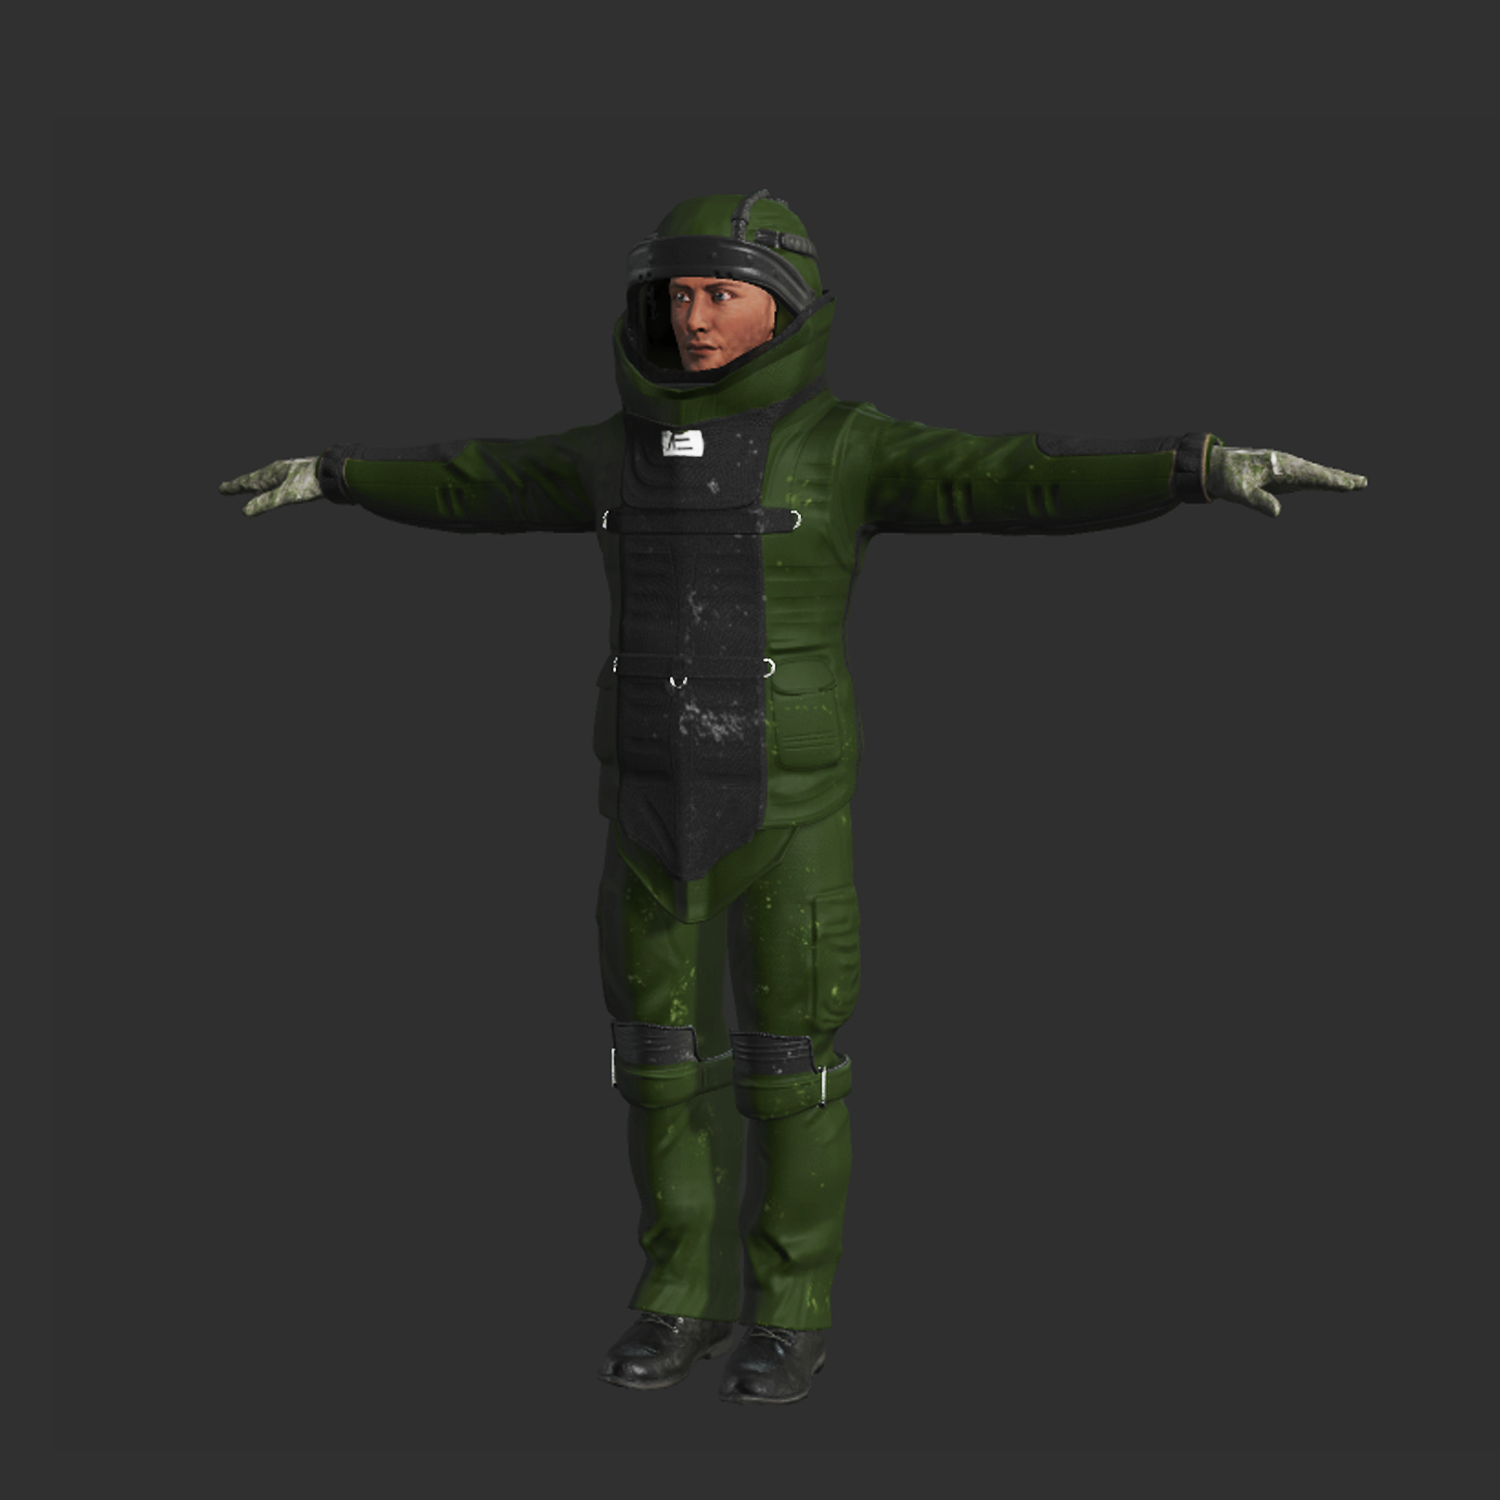 MilitarySeries_Bomb_Disposal_Costume